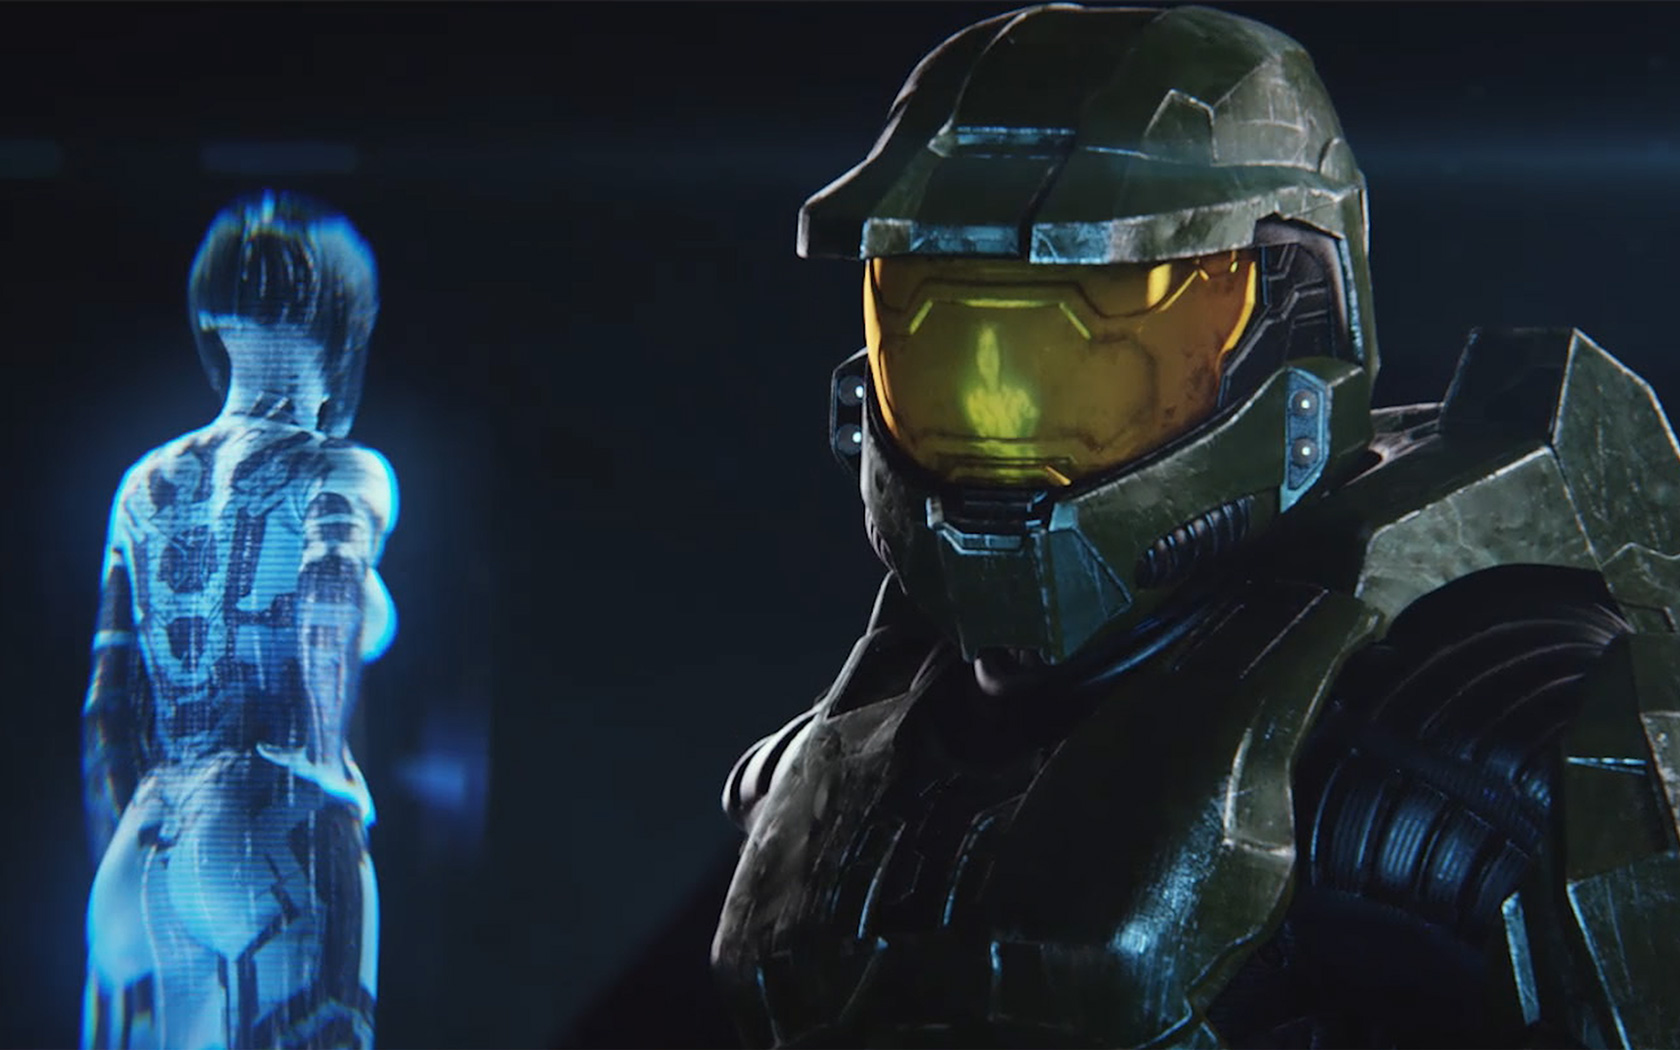 Halo 2 Wallpaper in 1680x1050